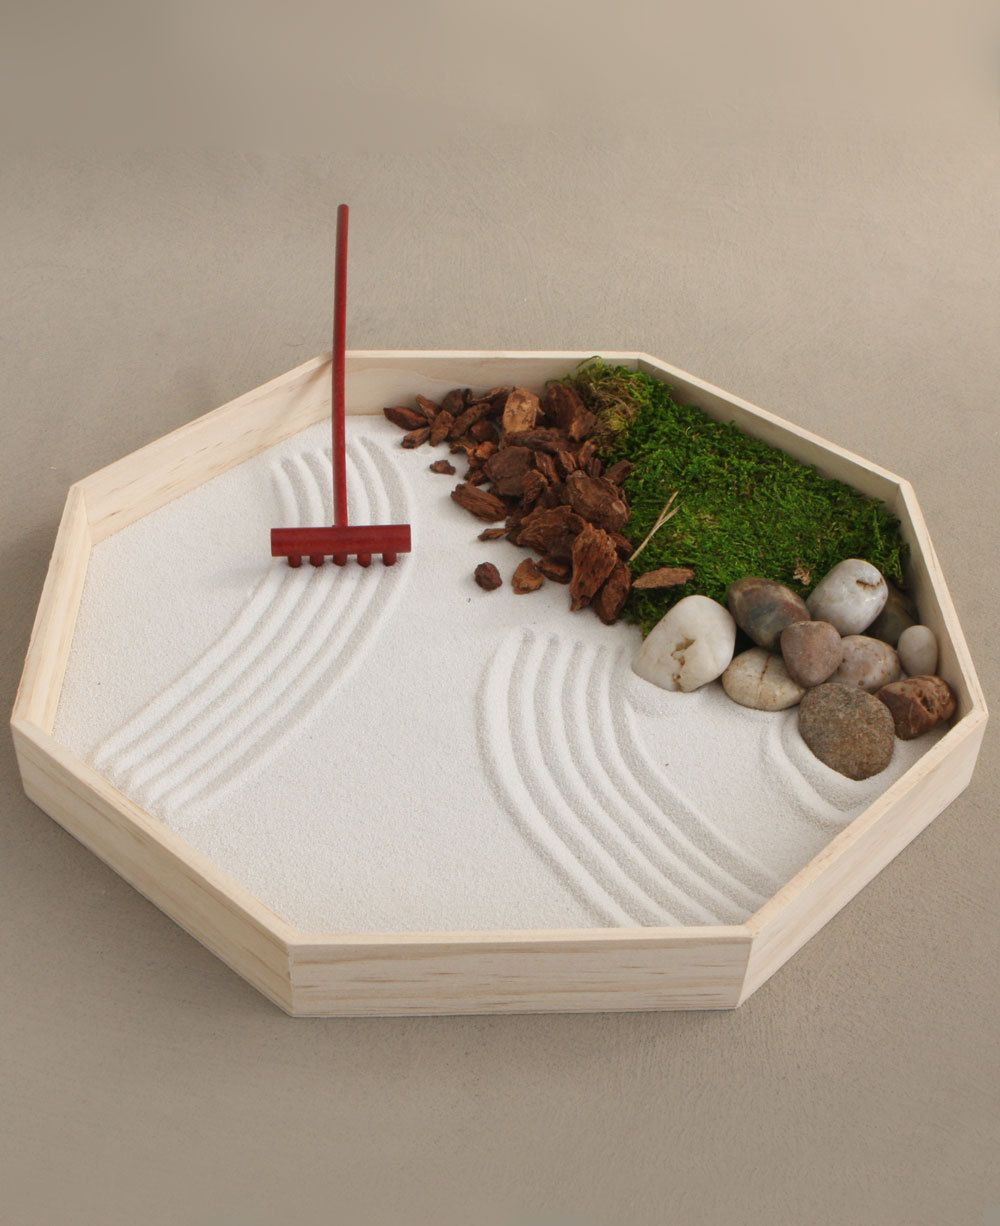 Table Top Zen Garden Zen Garten Miniatur Set